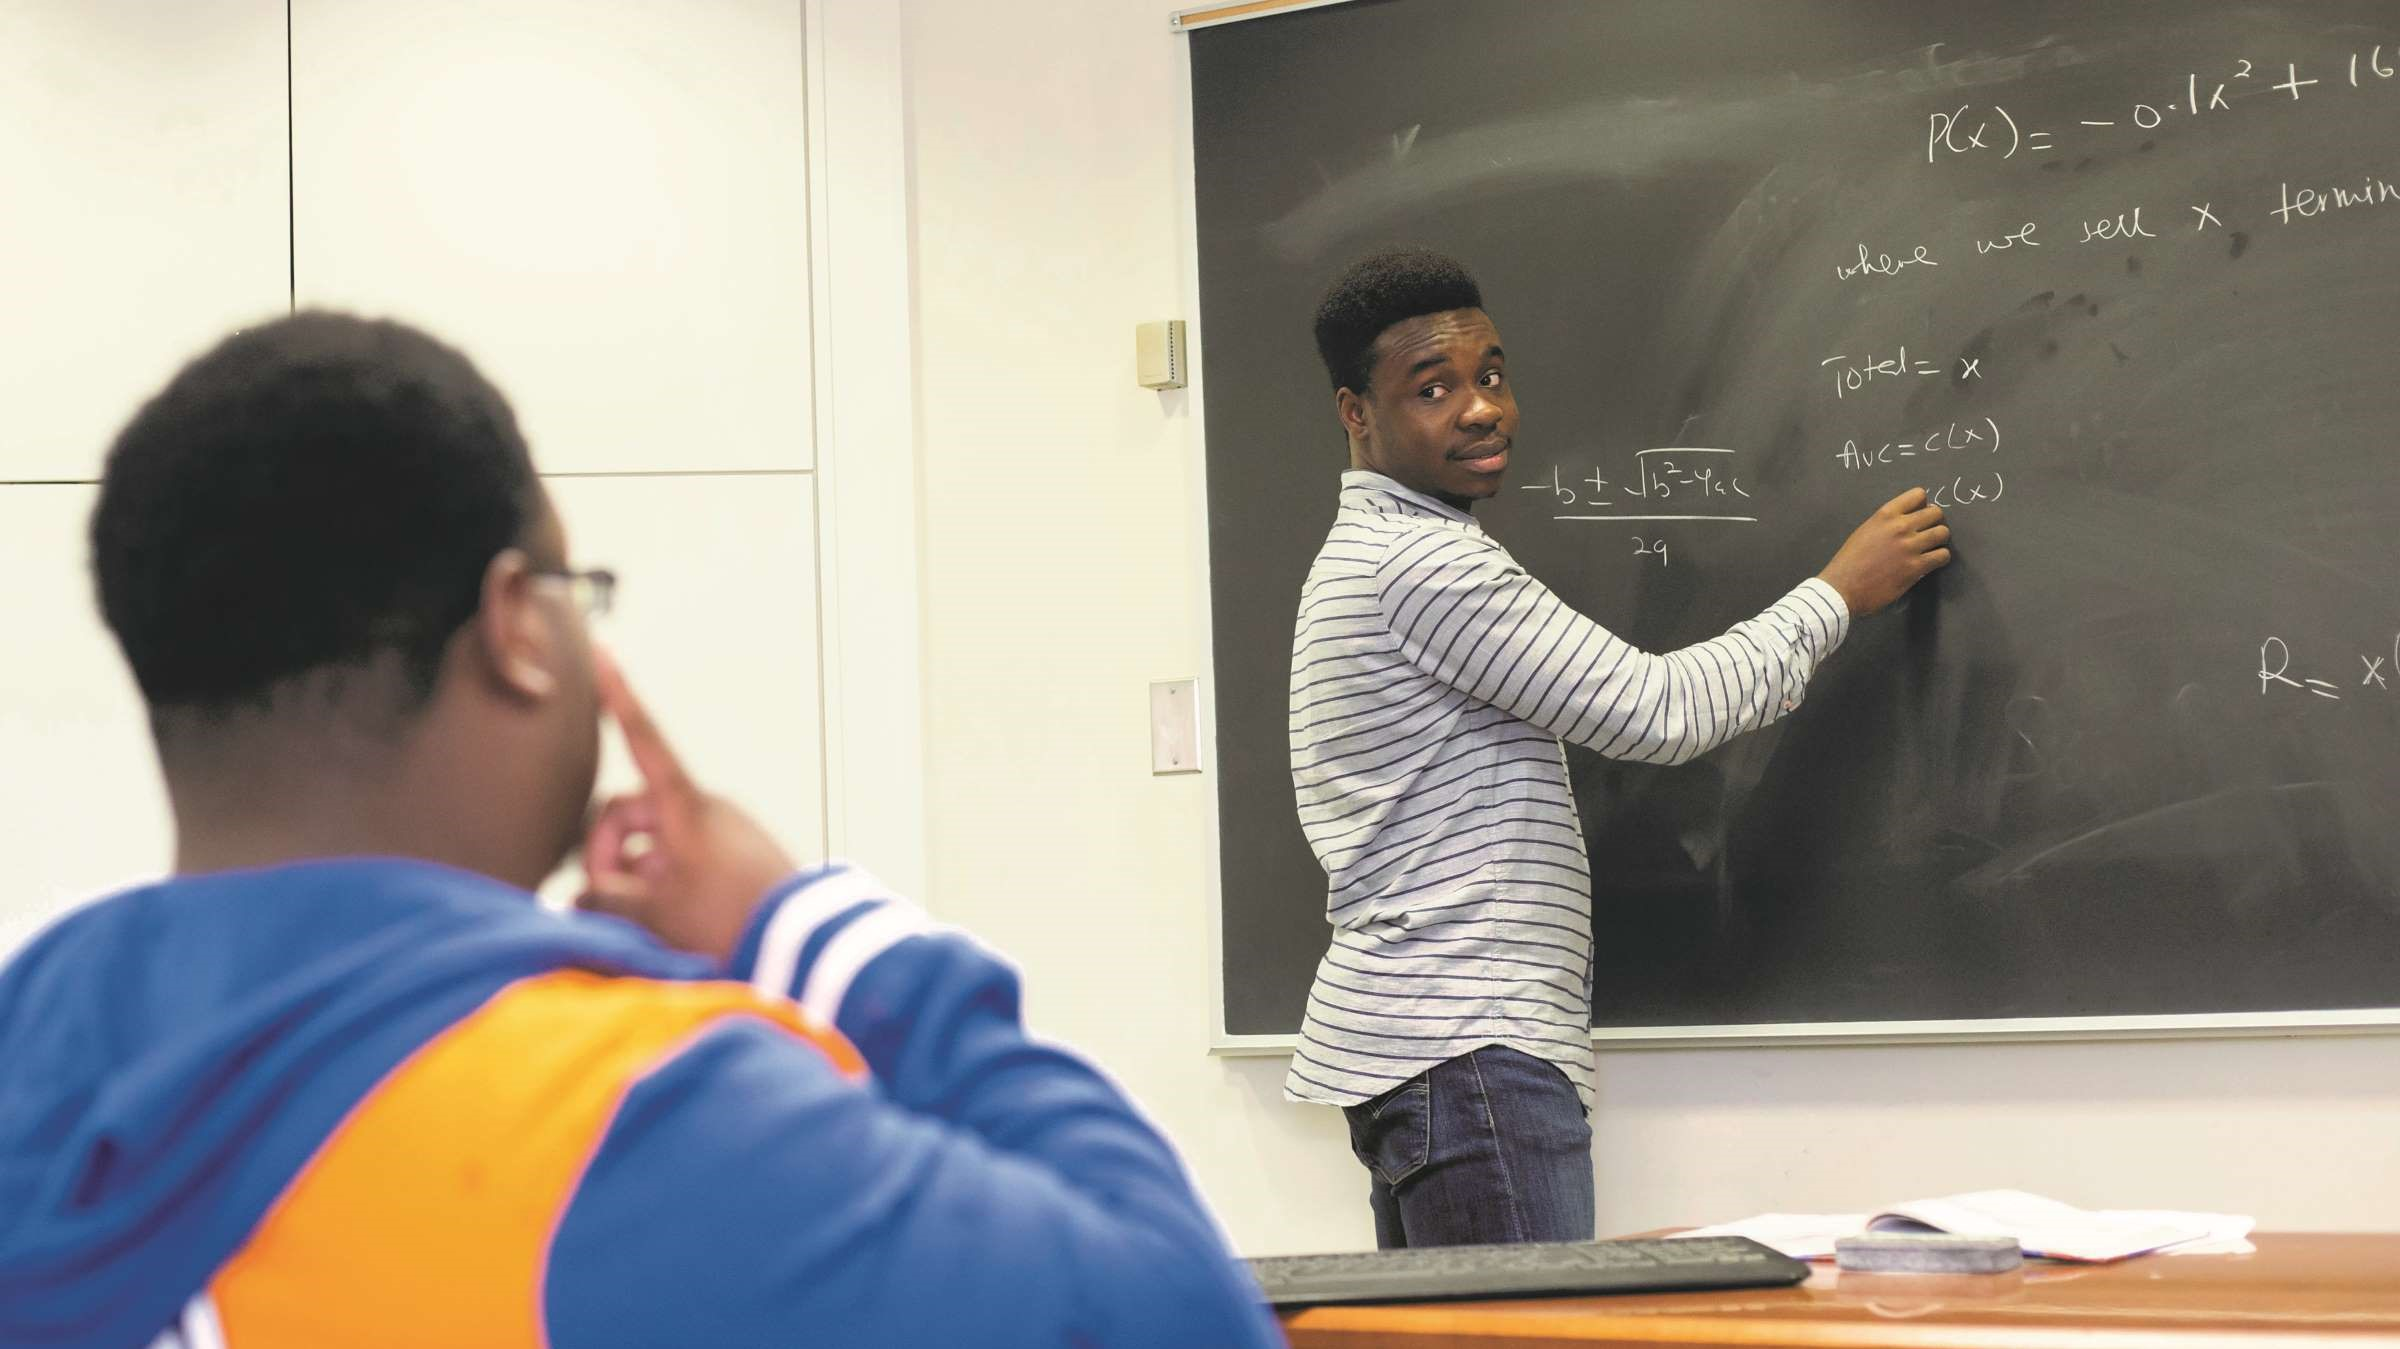 Student solves math problem on chalkboard in front of class.